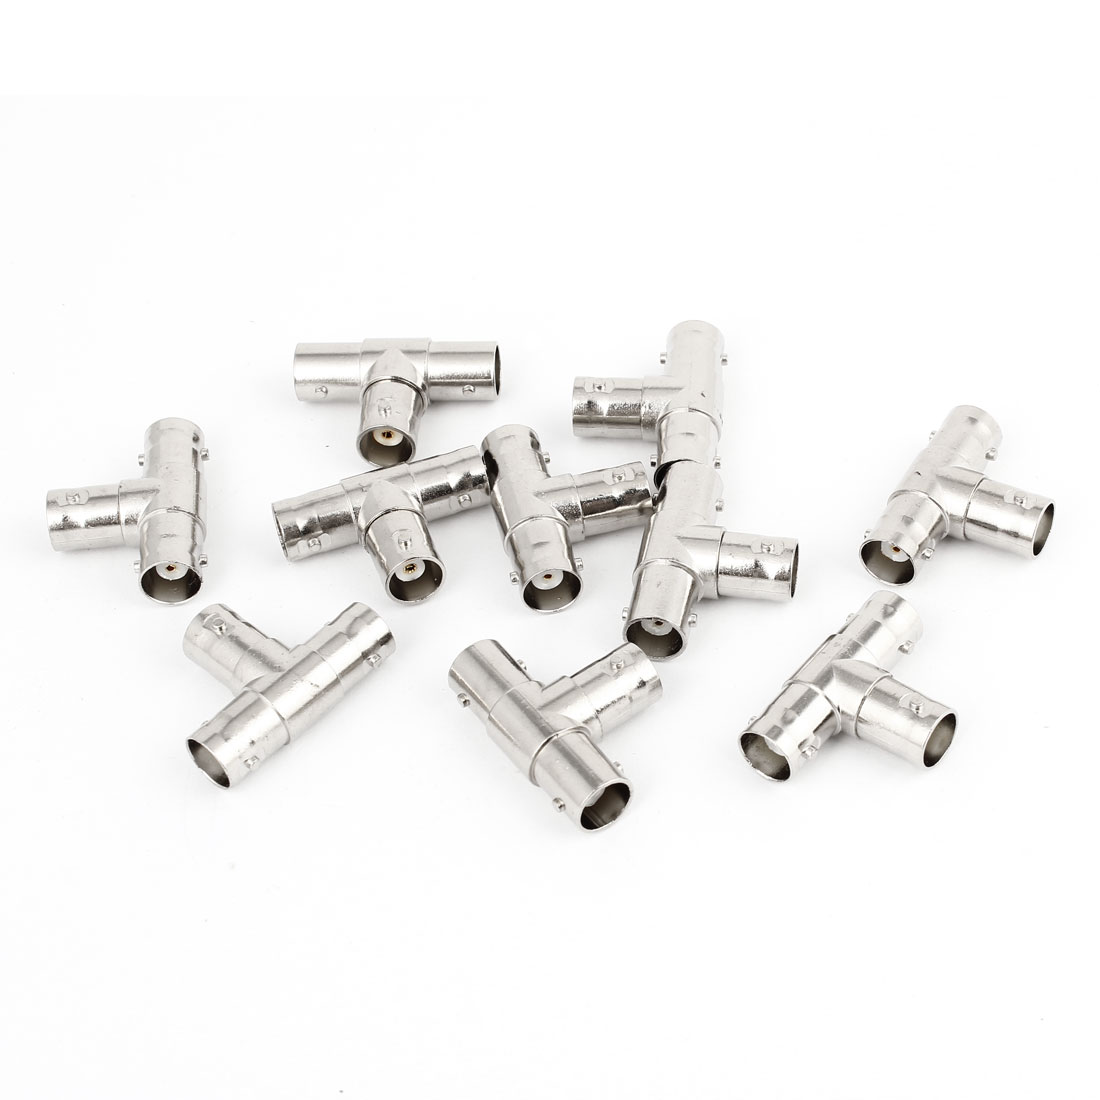 10pcs BNC Female to Dual BNC Female T Adapter Connector Silver Tone